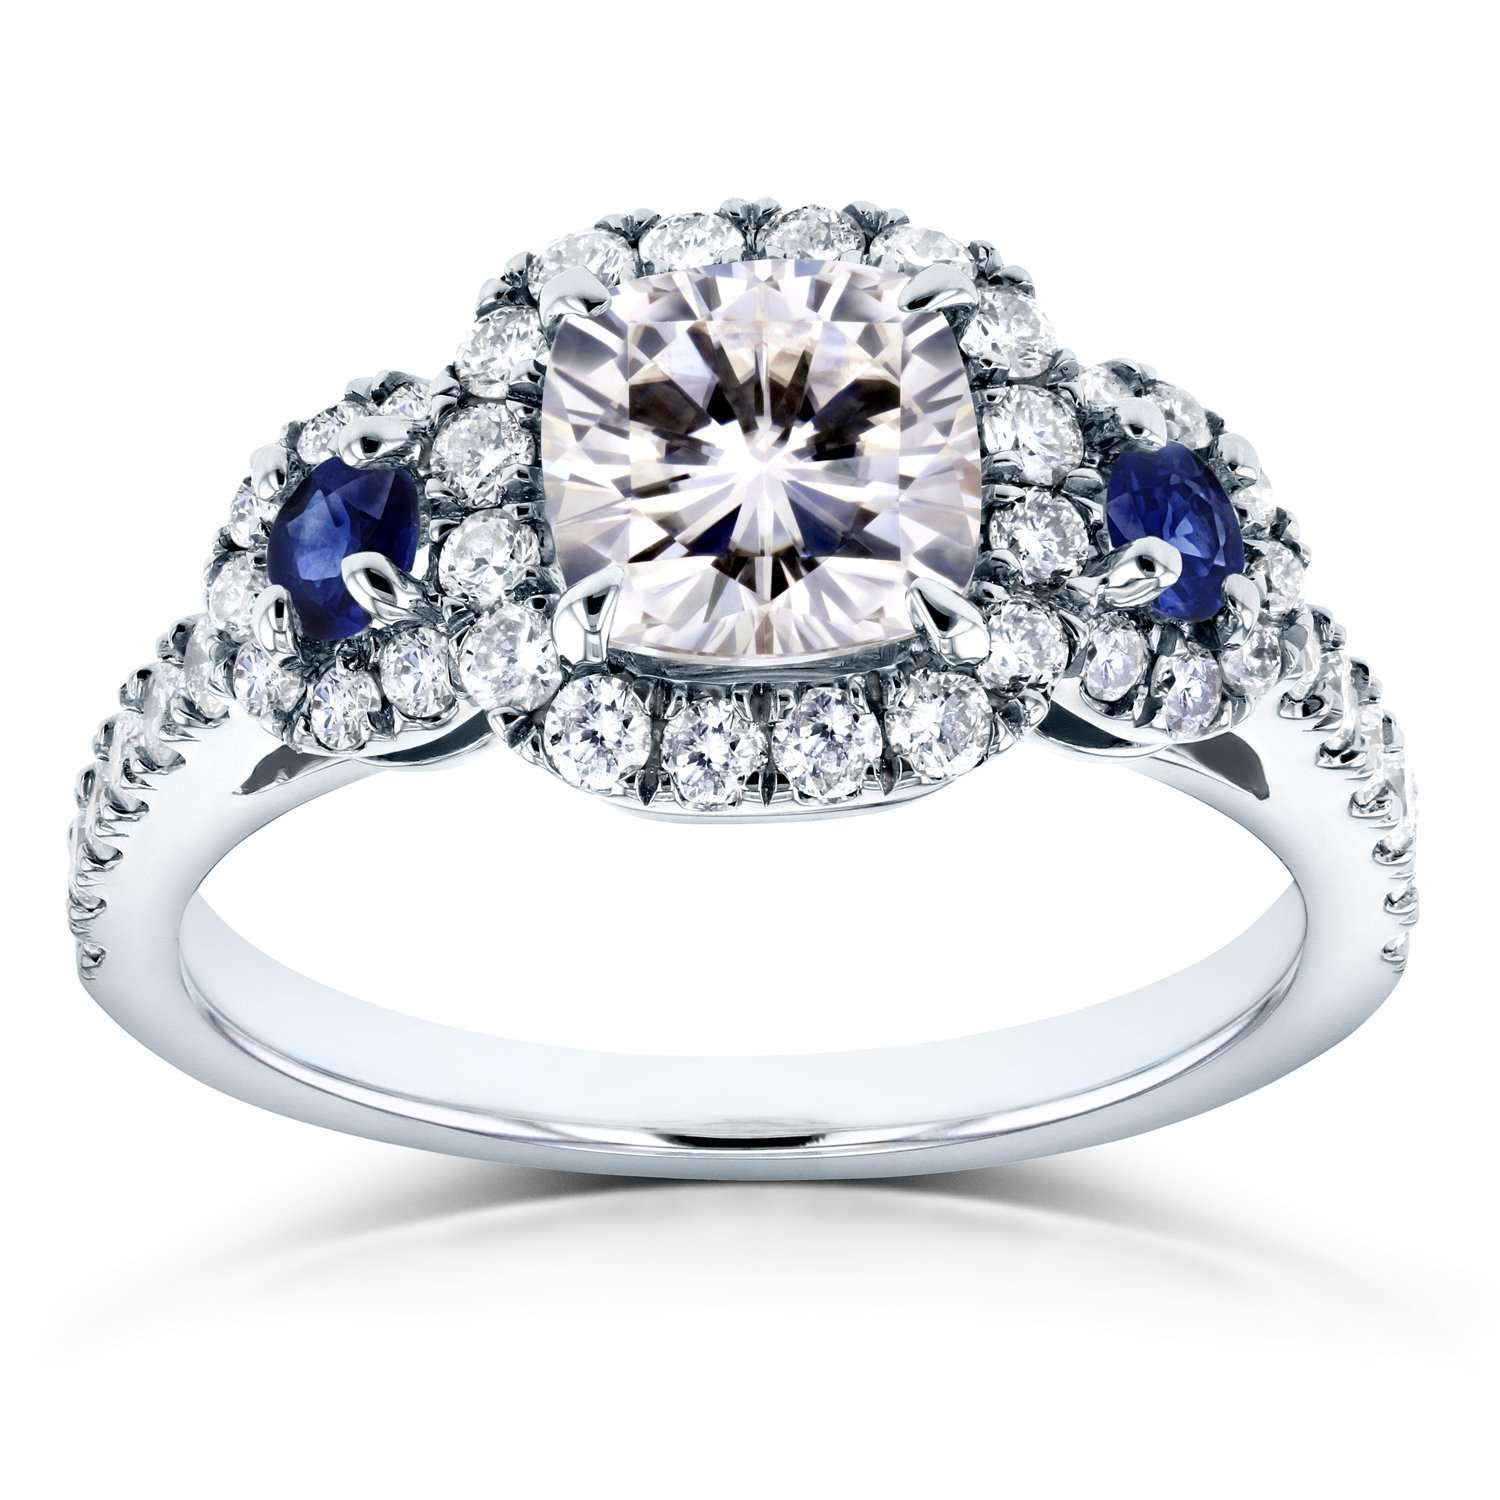 Compare Cushion Moissanite (FG) Sapphire and Diamond Engagement Ring 1 7/8 CTW 14k White Gold - 4